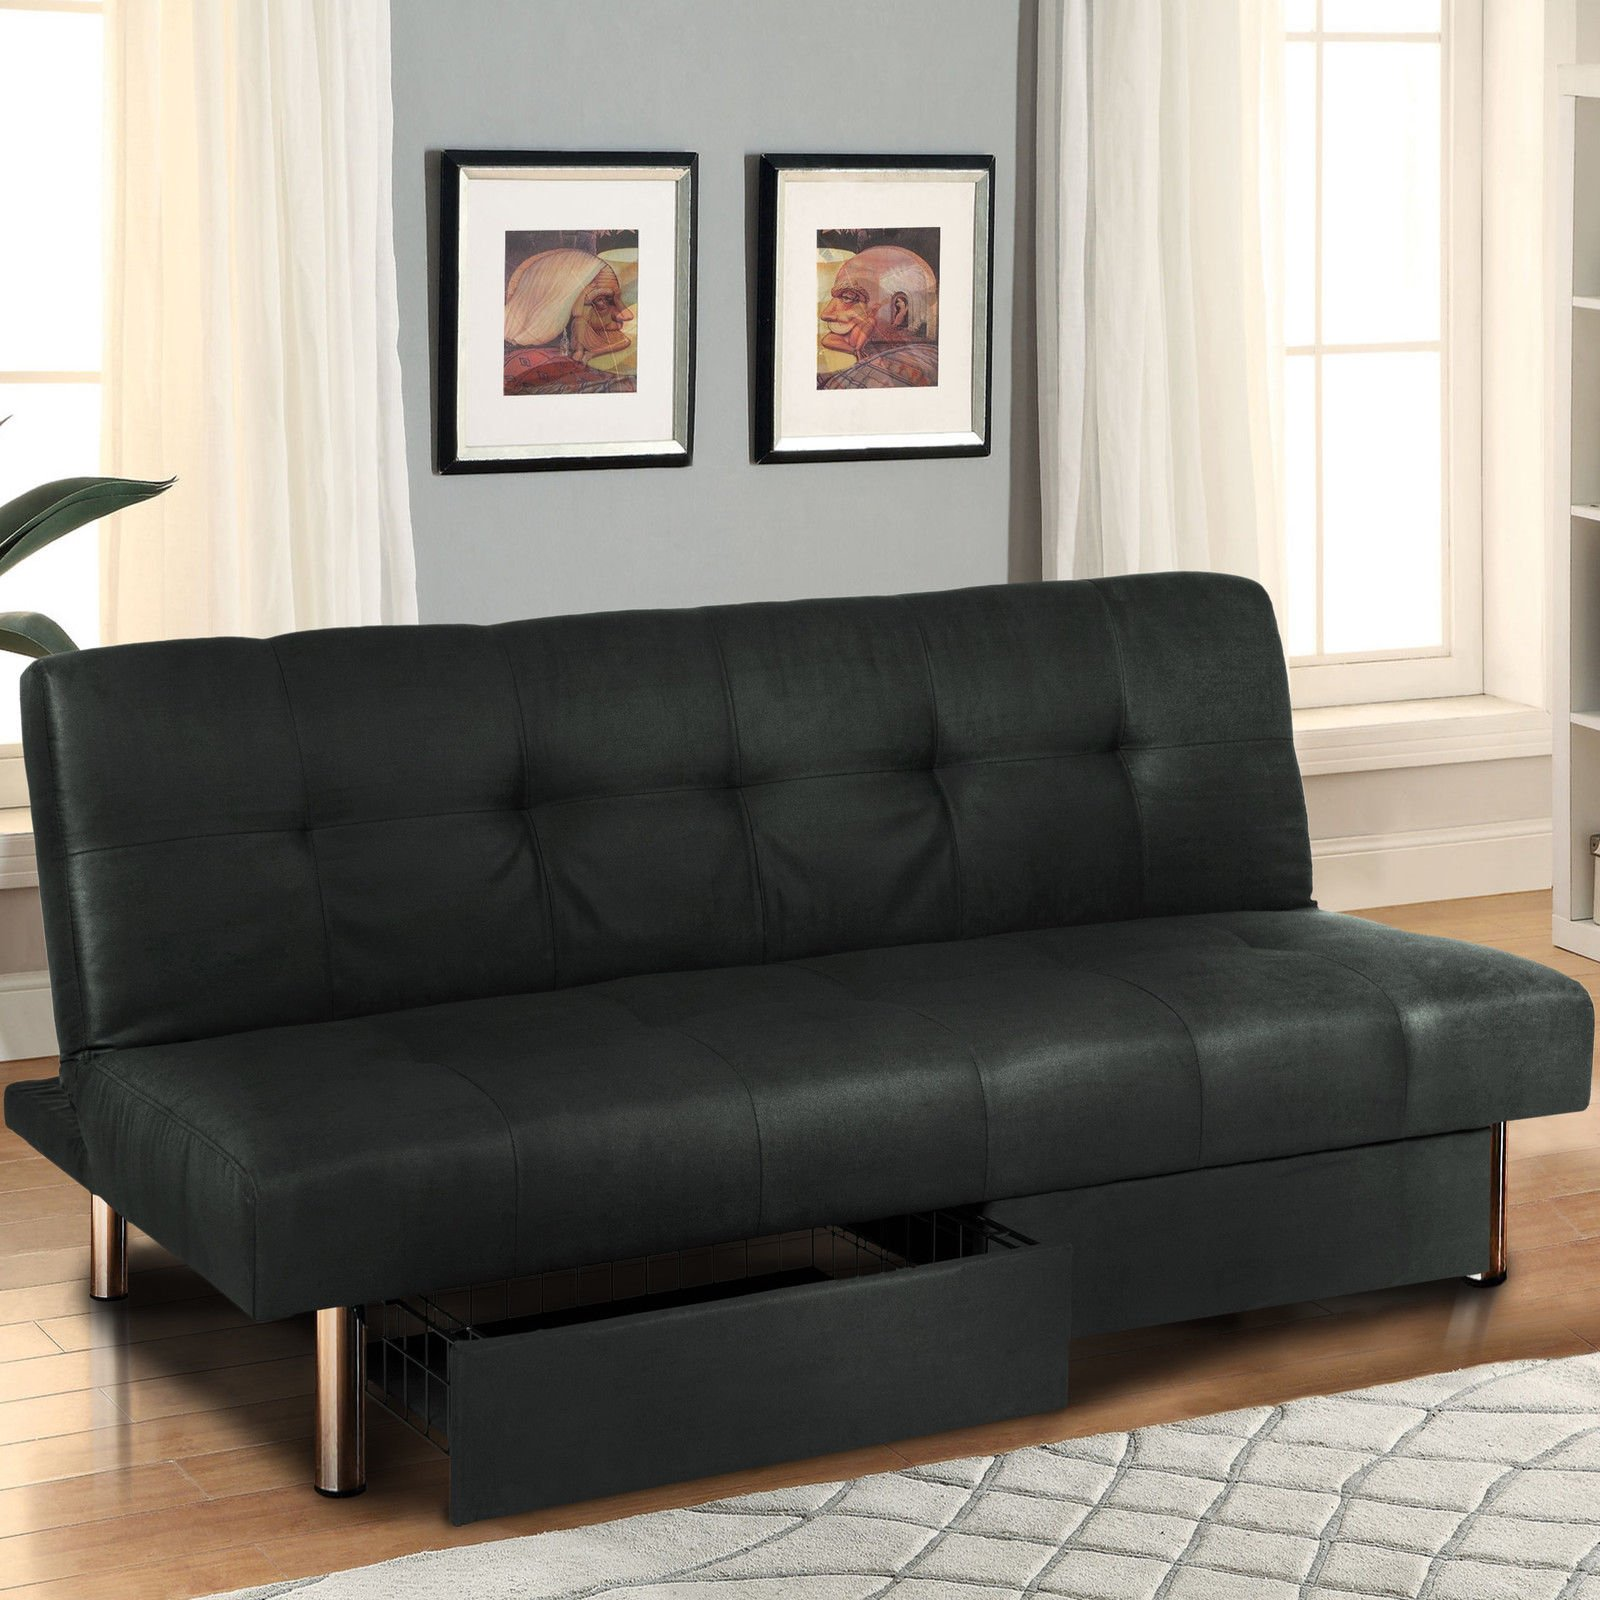 Wakrays Microfiber Futon Folding Sofa Bed Couch Mattress & Storage Recliner Lounger (US Stock)